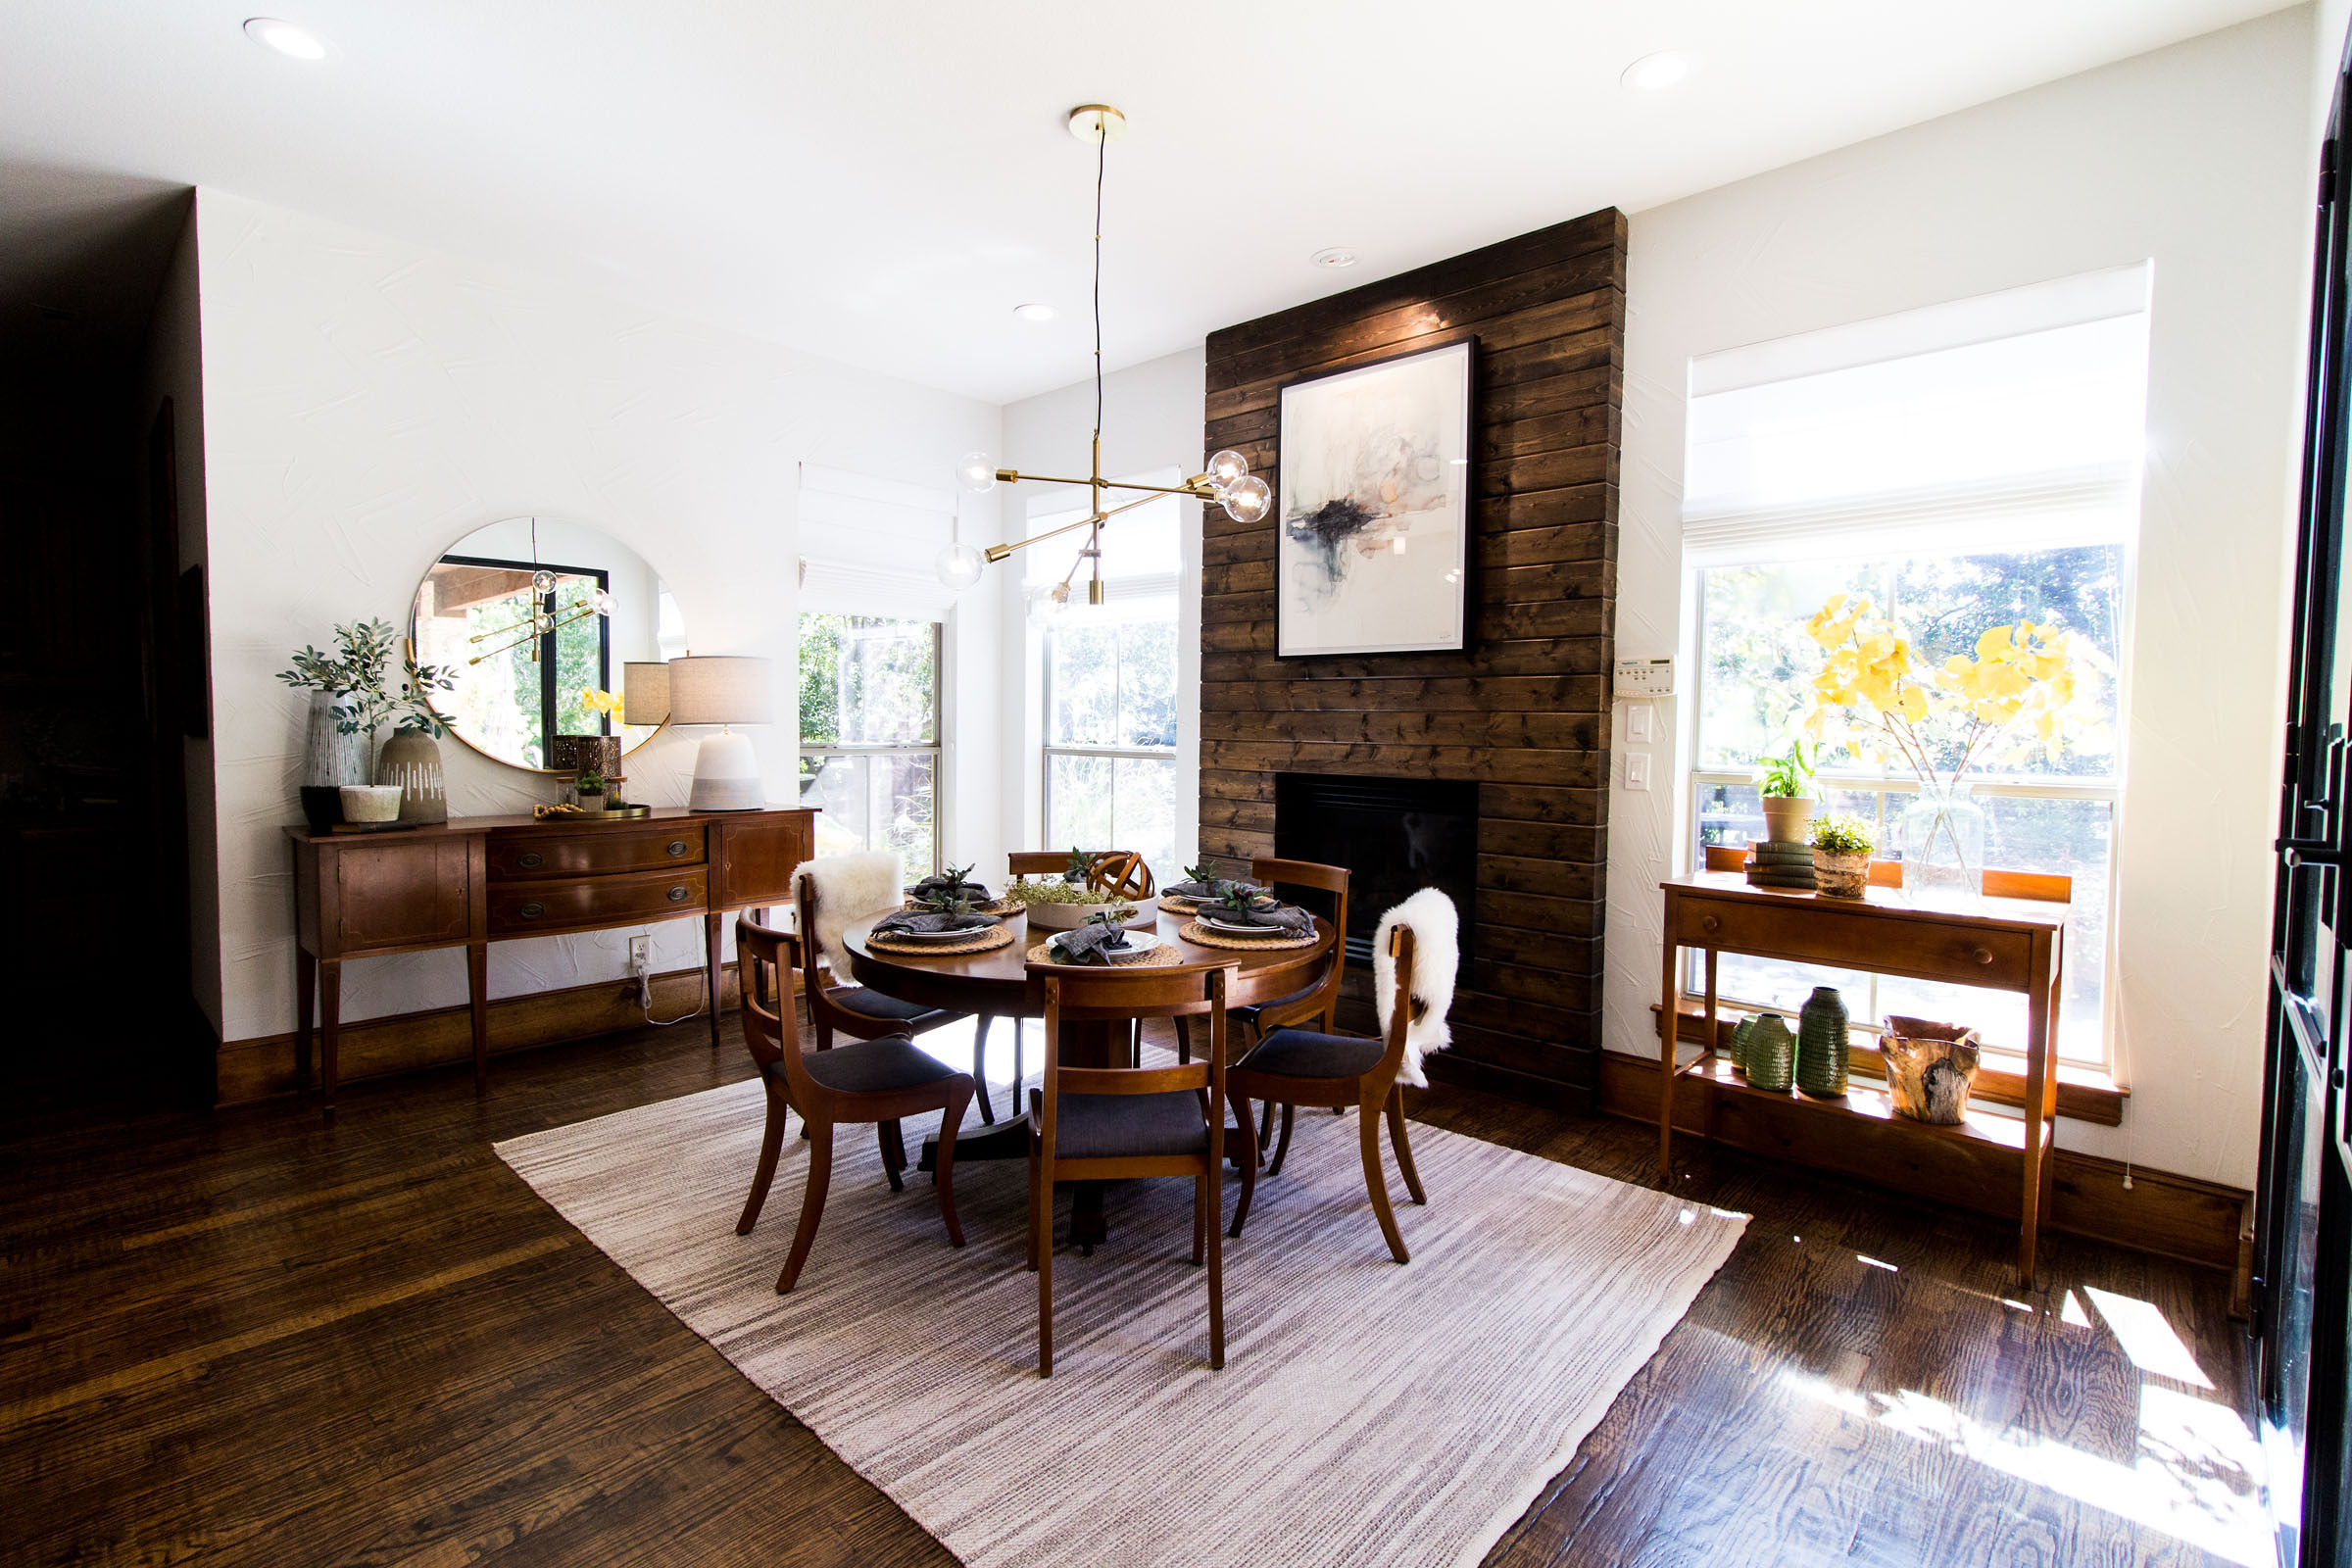 Cozy breakfast nook area with wood fireplace, iron framed patio doors, grey area rug, staged table, exposed bulb lighting, minimalistic decor